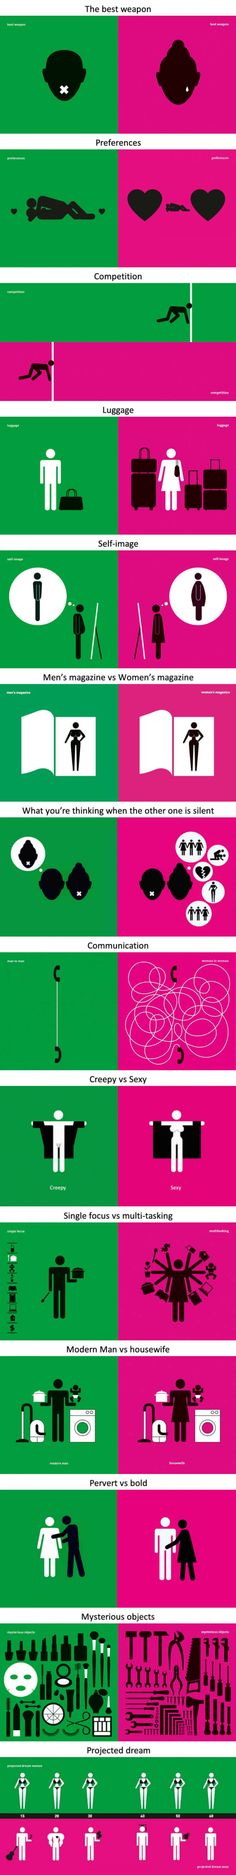 These Simple Pictograms Show The Ridiculousness Of Gender Stereotypes